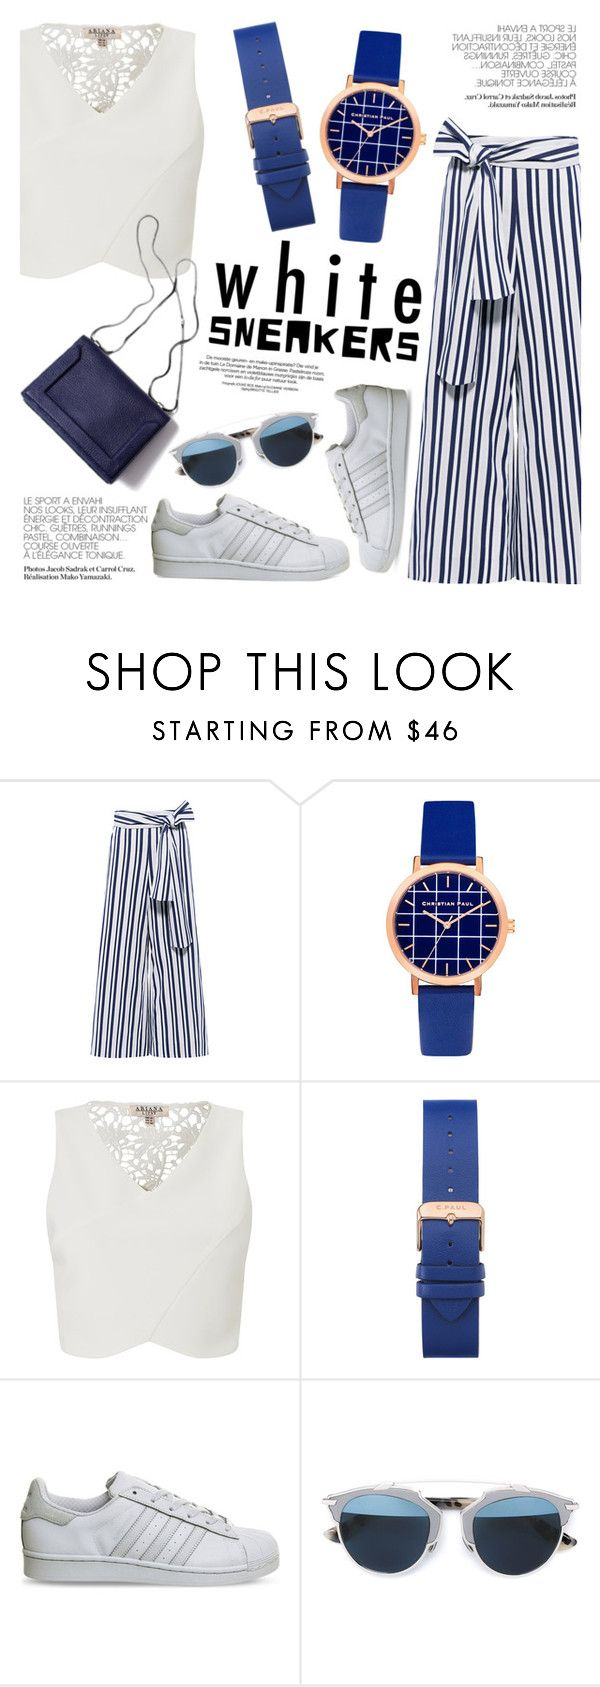 """""""Bright White Sneakers"""" by christianpaul ❤ liked on Polyvore featuring Tanya Taylor, Lipsy, adidas, Christian Dior, contestentry, whitesneakers and christianpaul"""